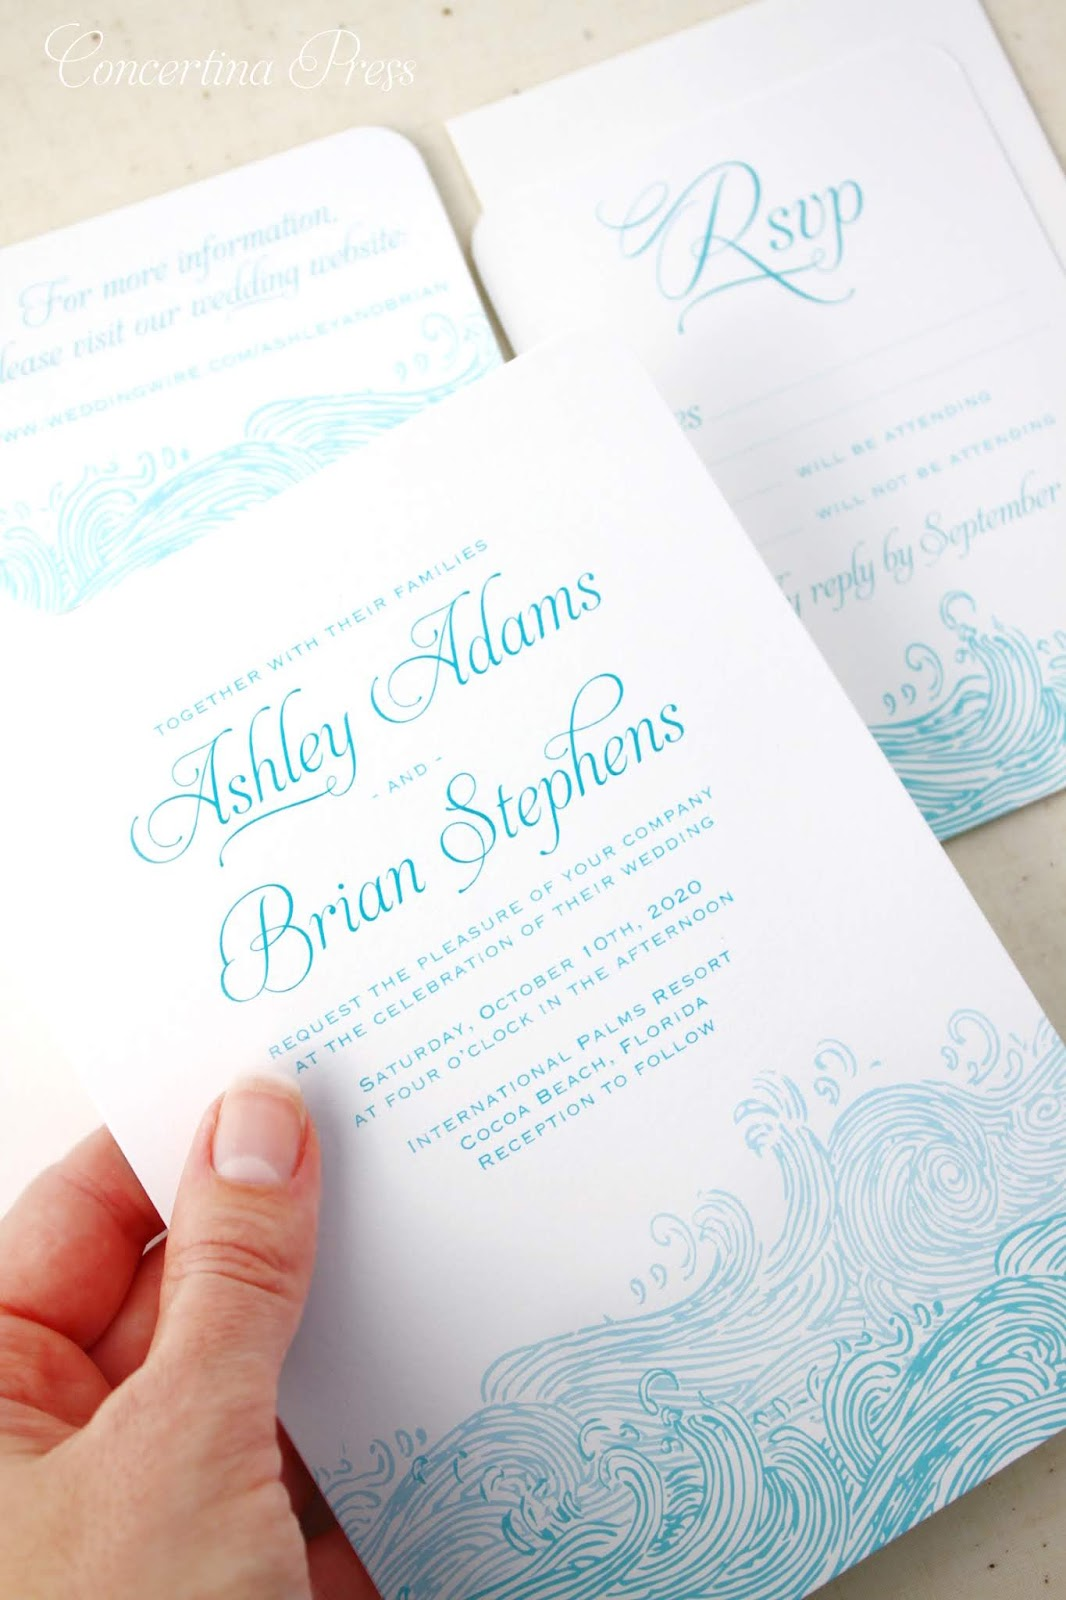 Beach Waves Wedding Invitations with RSVP and Website Card from Concertina Press